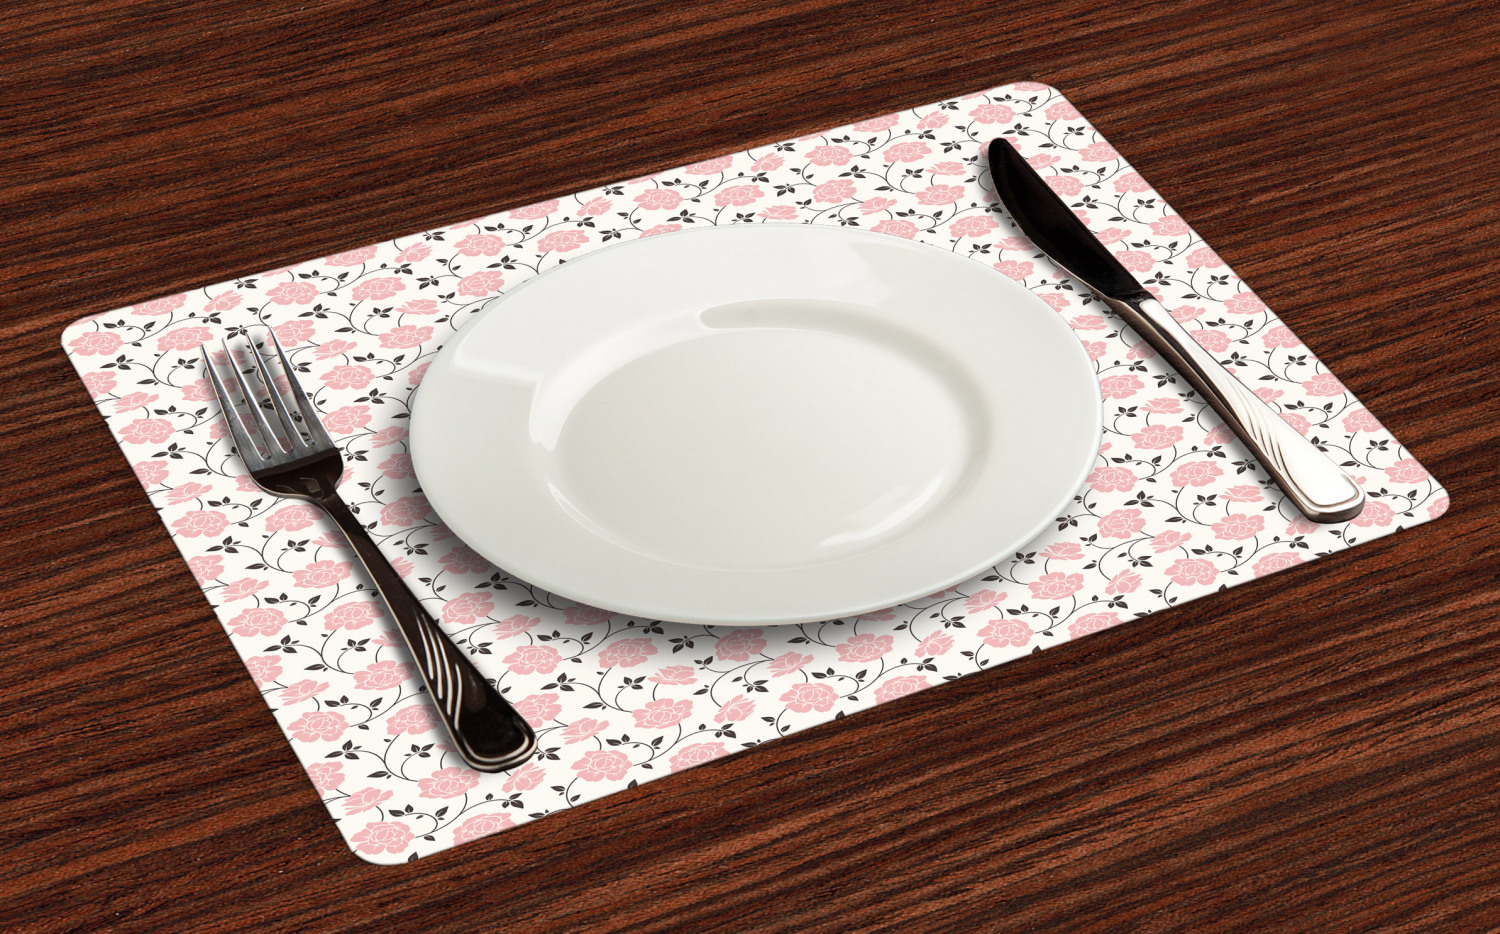 Ambesonne-Flower-Pattern-Placemat-Set-of-4-Fabric-Place-Mats-for-Table-Decor thumbnail 177